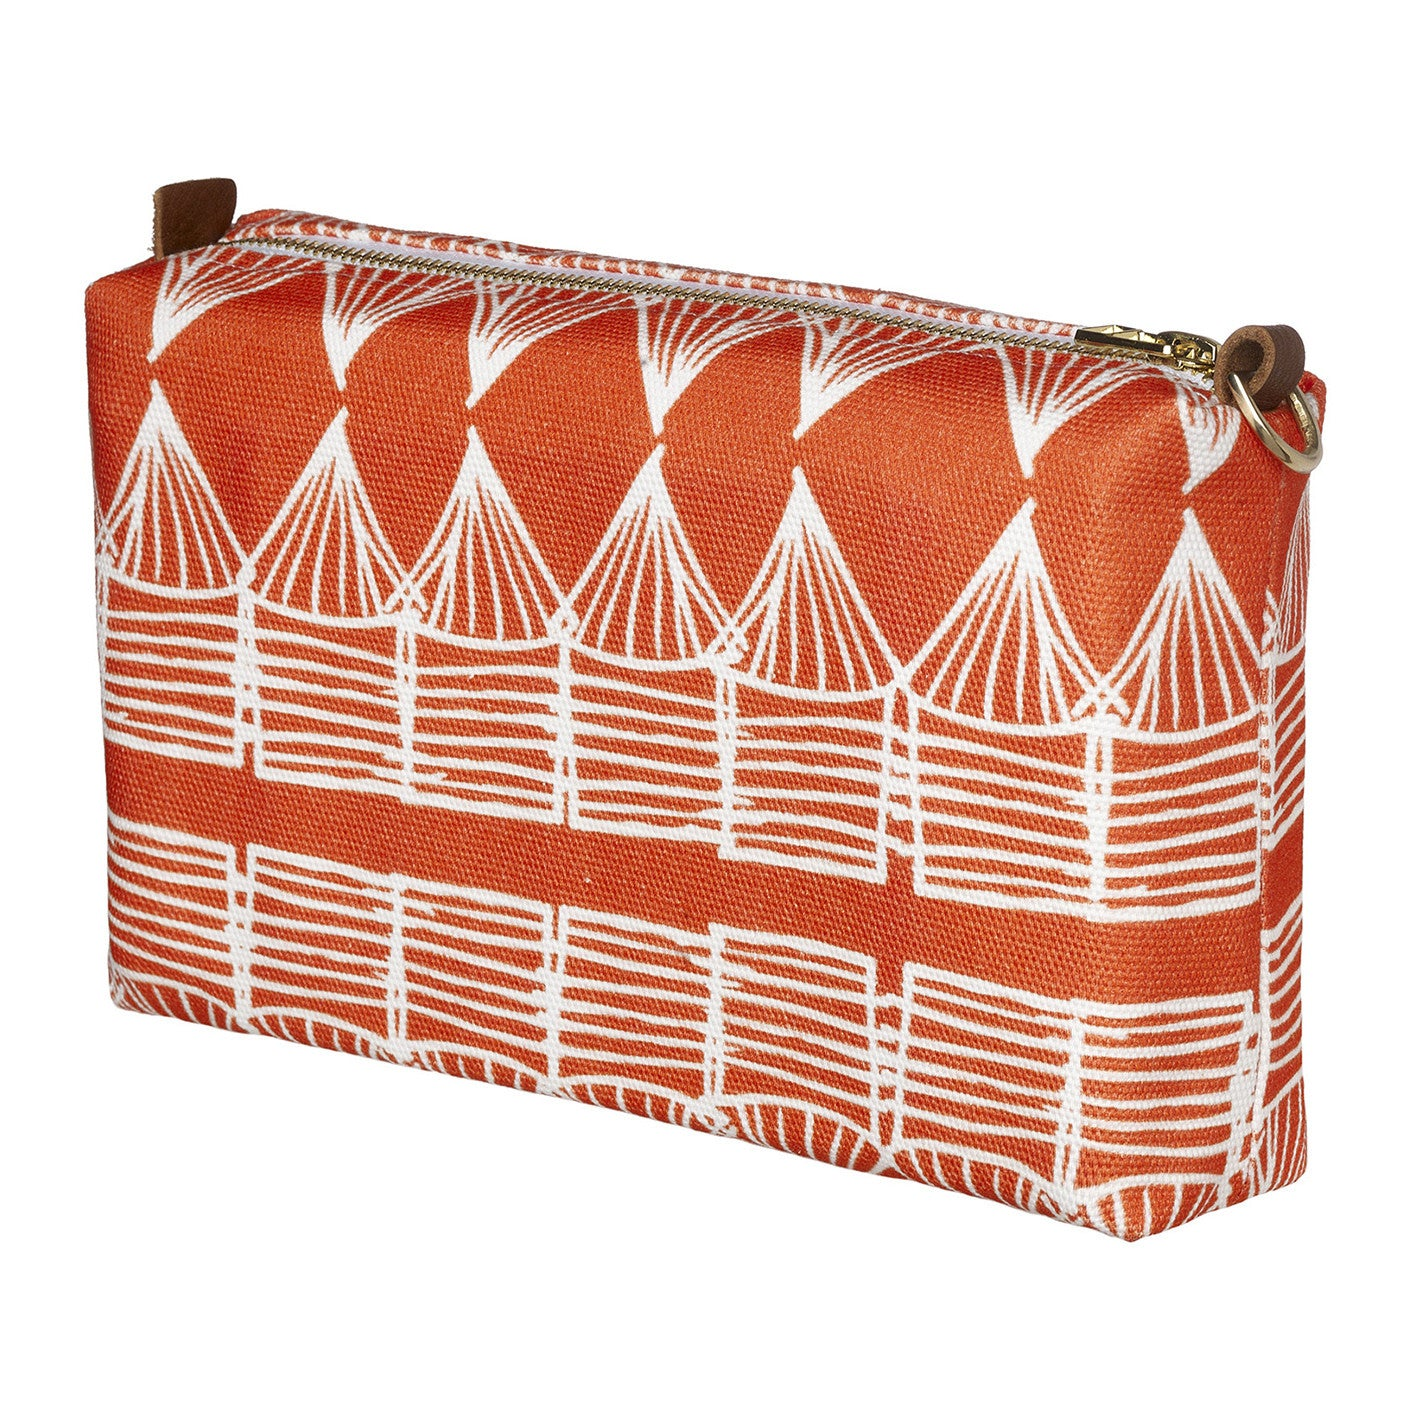 Tiki Huts Pattern Printed Canvas Toiletry Bag in Bright Pumpkin Orange